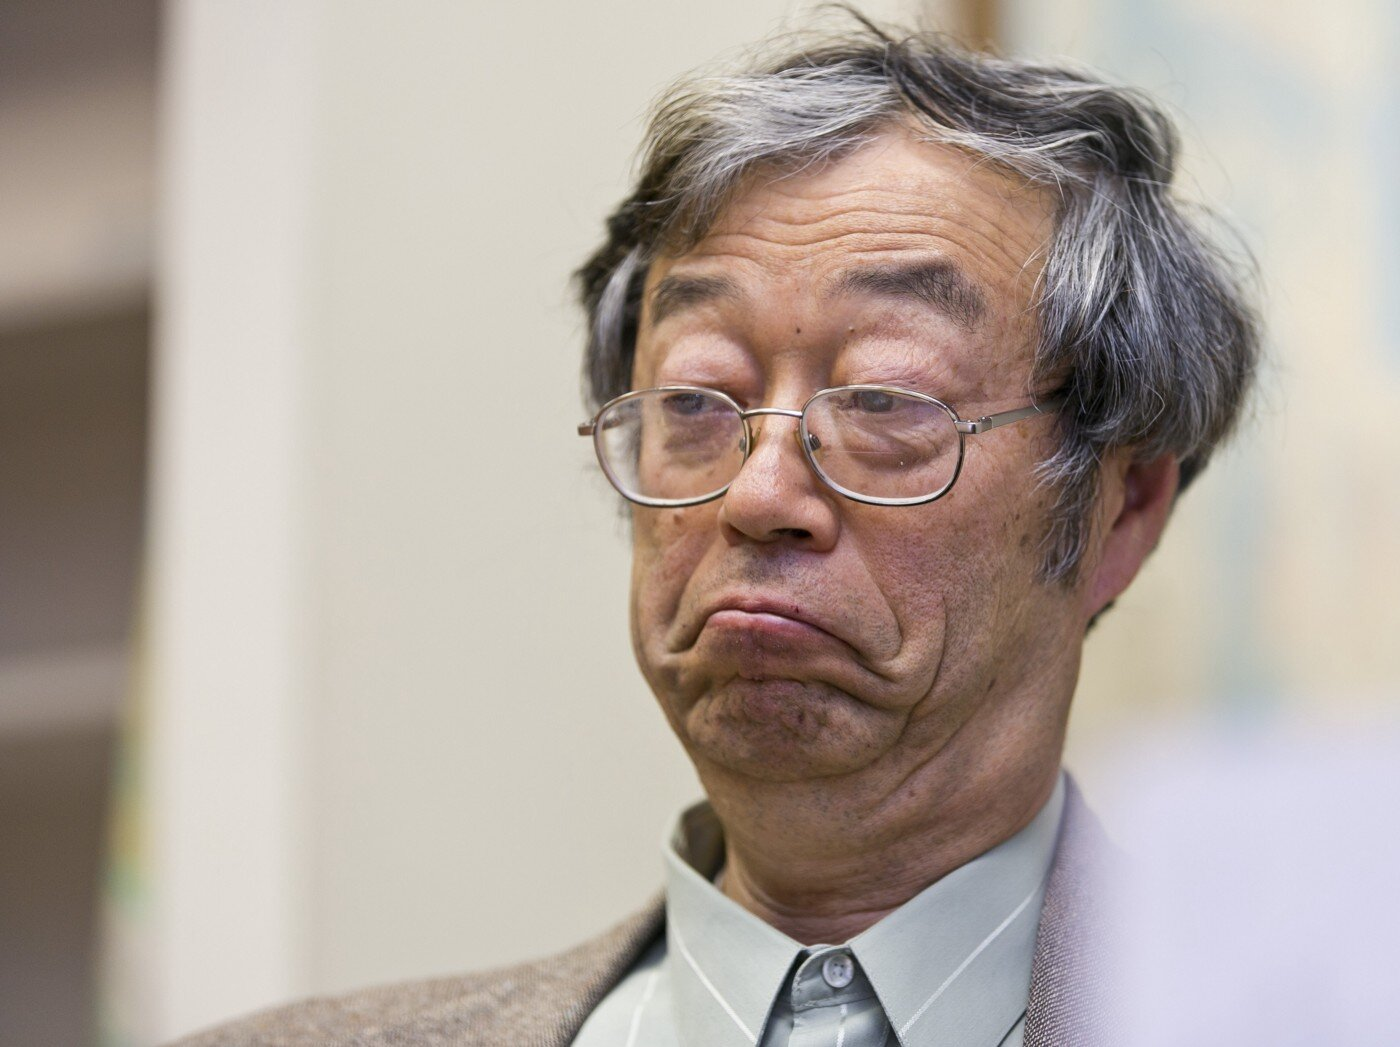 Even Jap Satoshi was more shocked at Faketoshi's claims than the reporter's claim it was him..